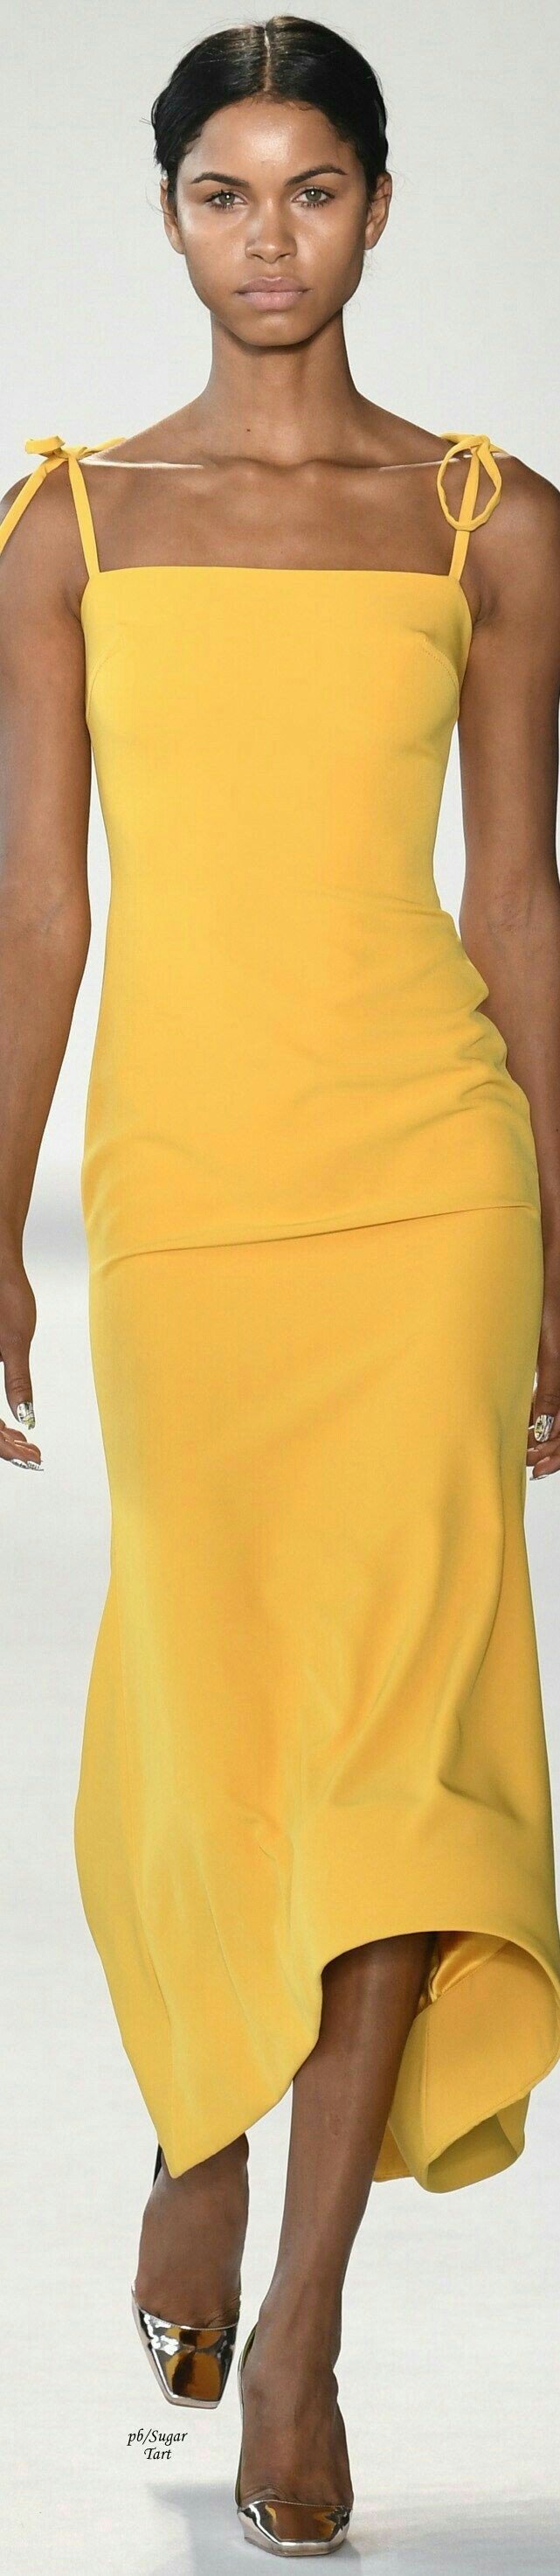 Yellow Fashion Colorful Queen Dress Fantasy Siriano Elegant